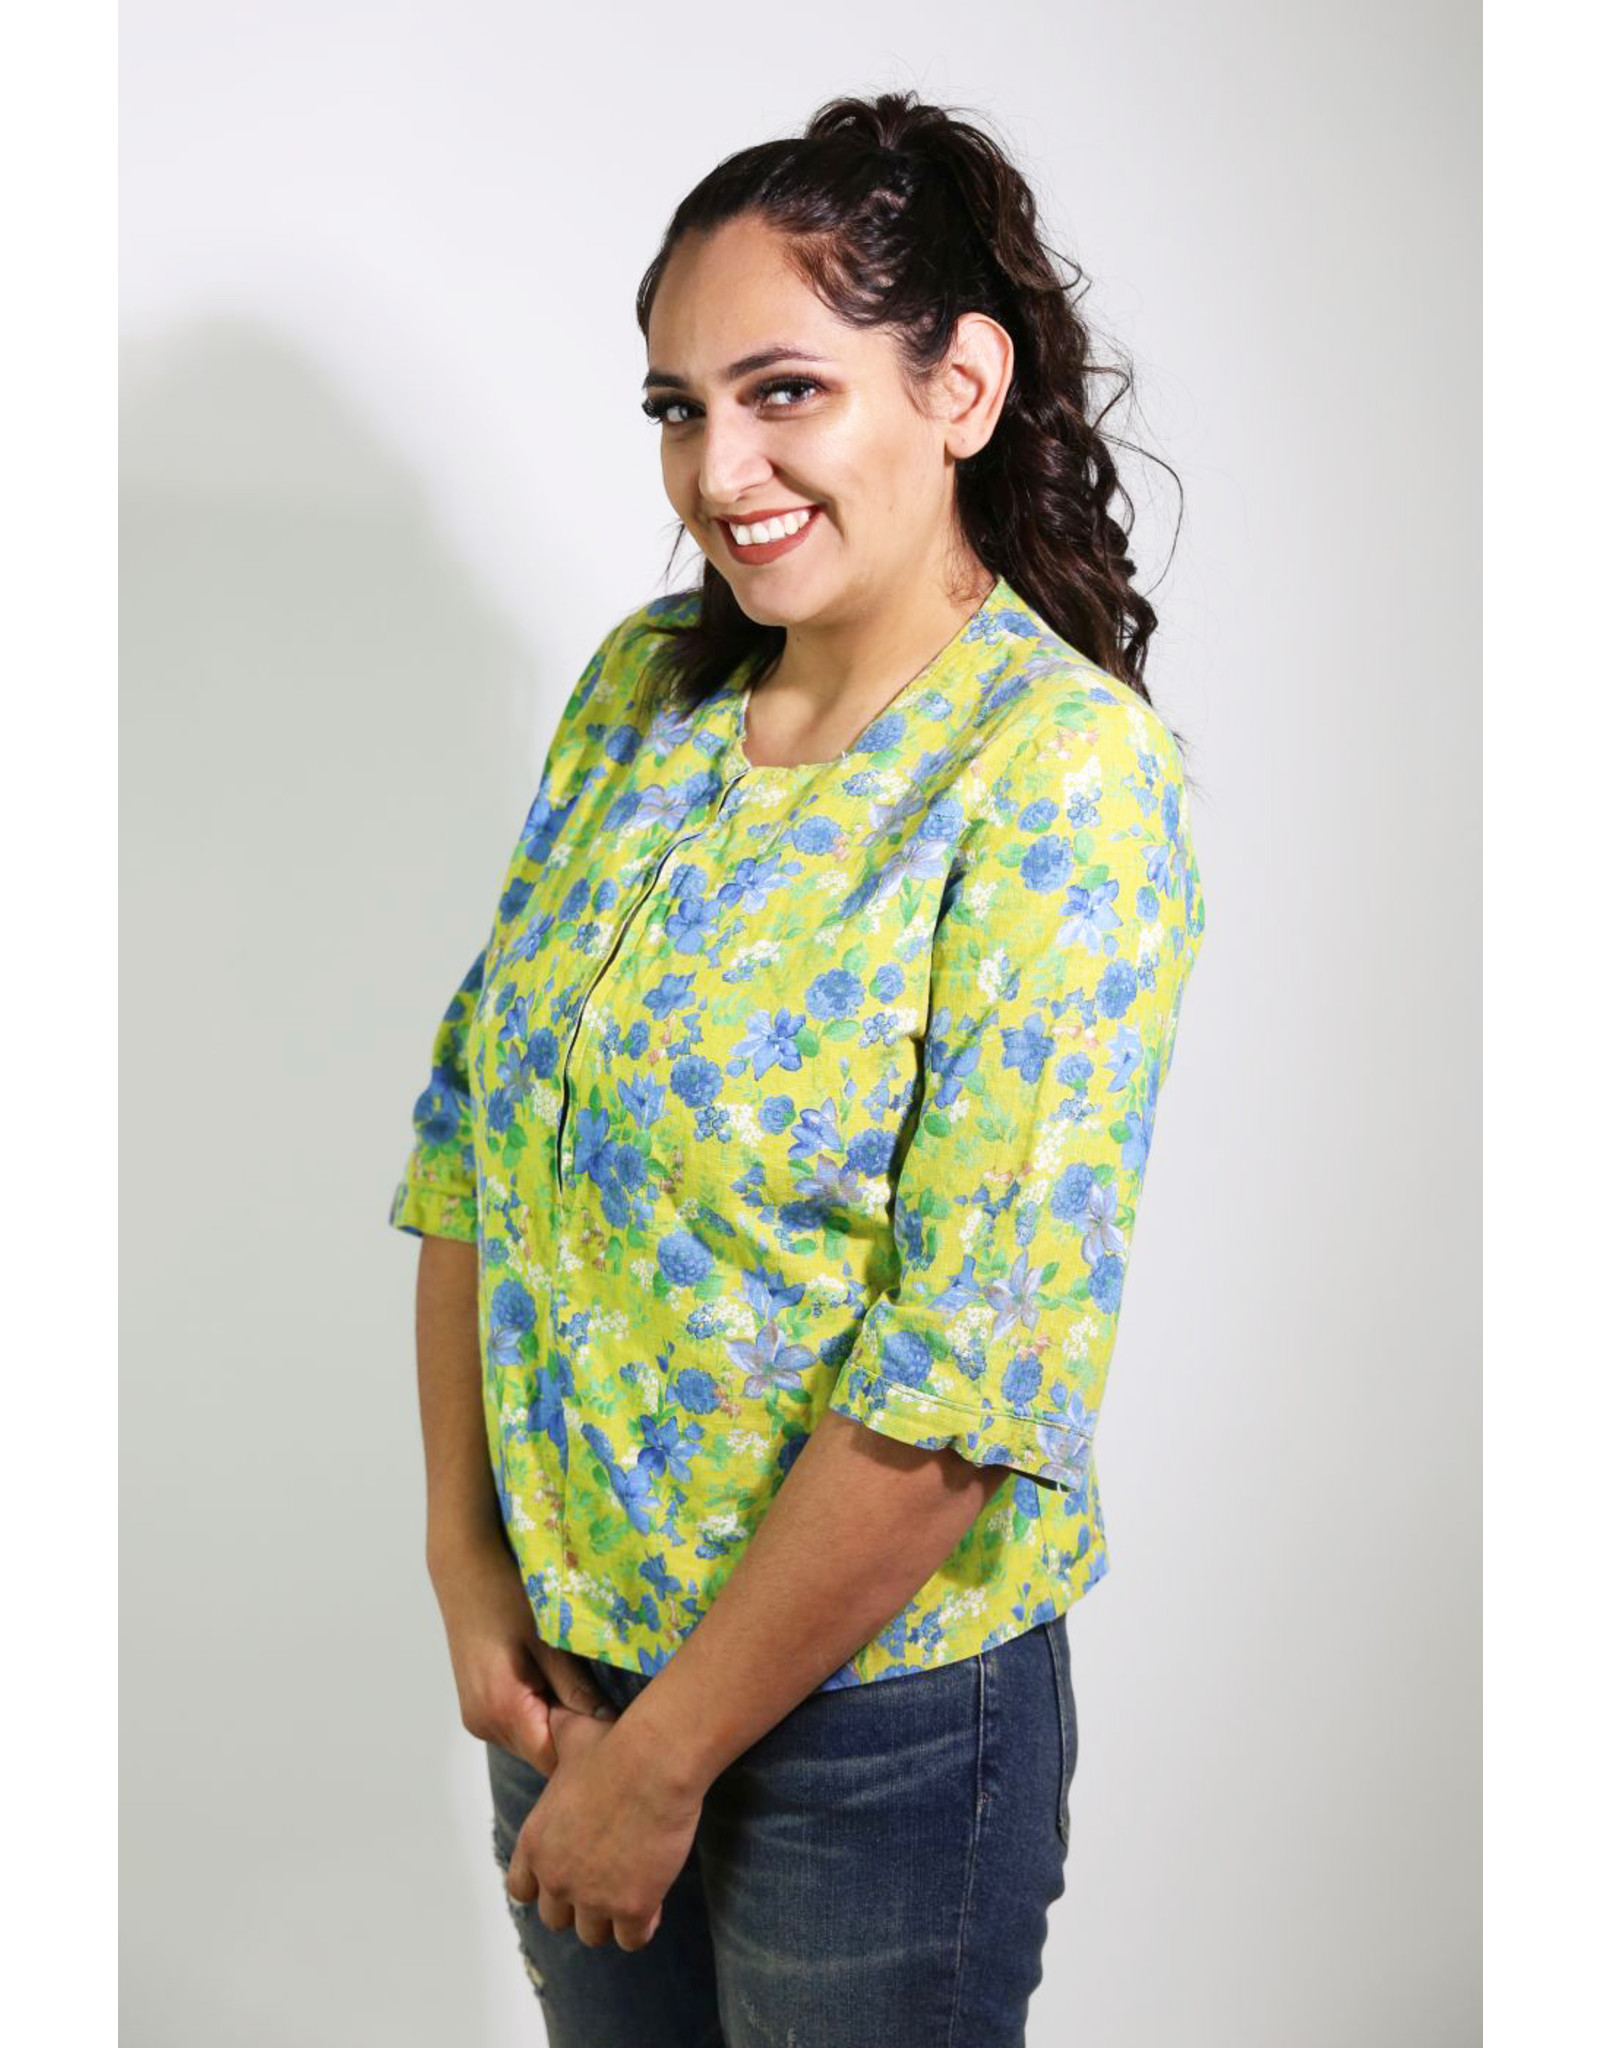 1960's Plus Size Yellow & Blue Top